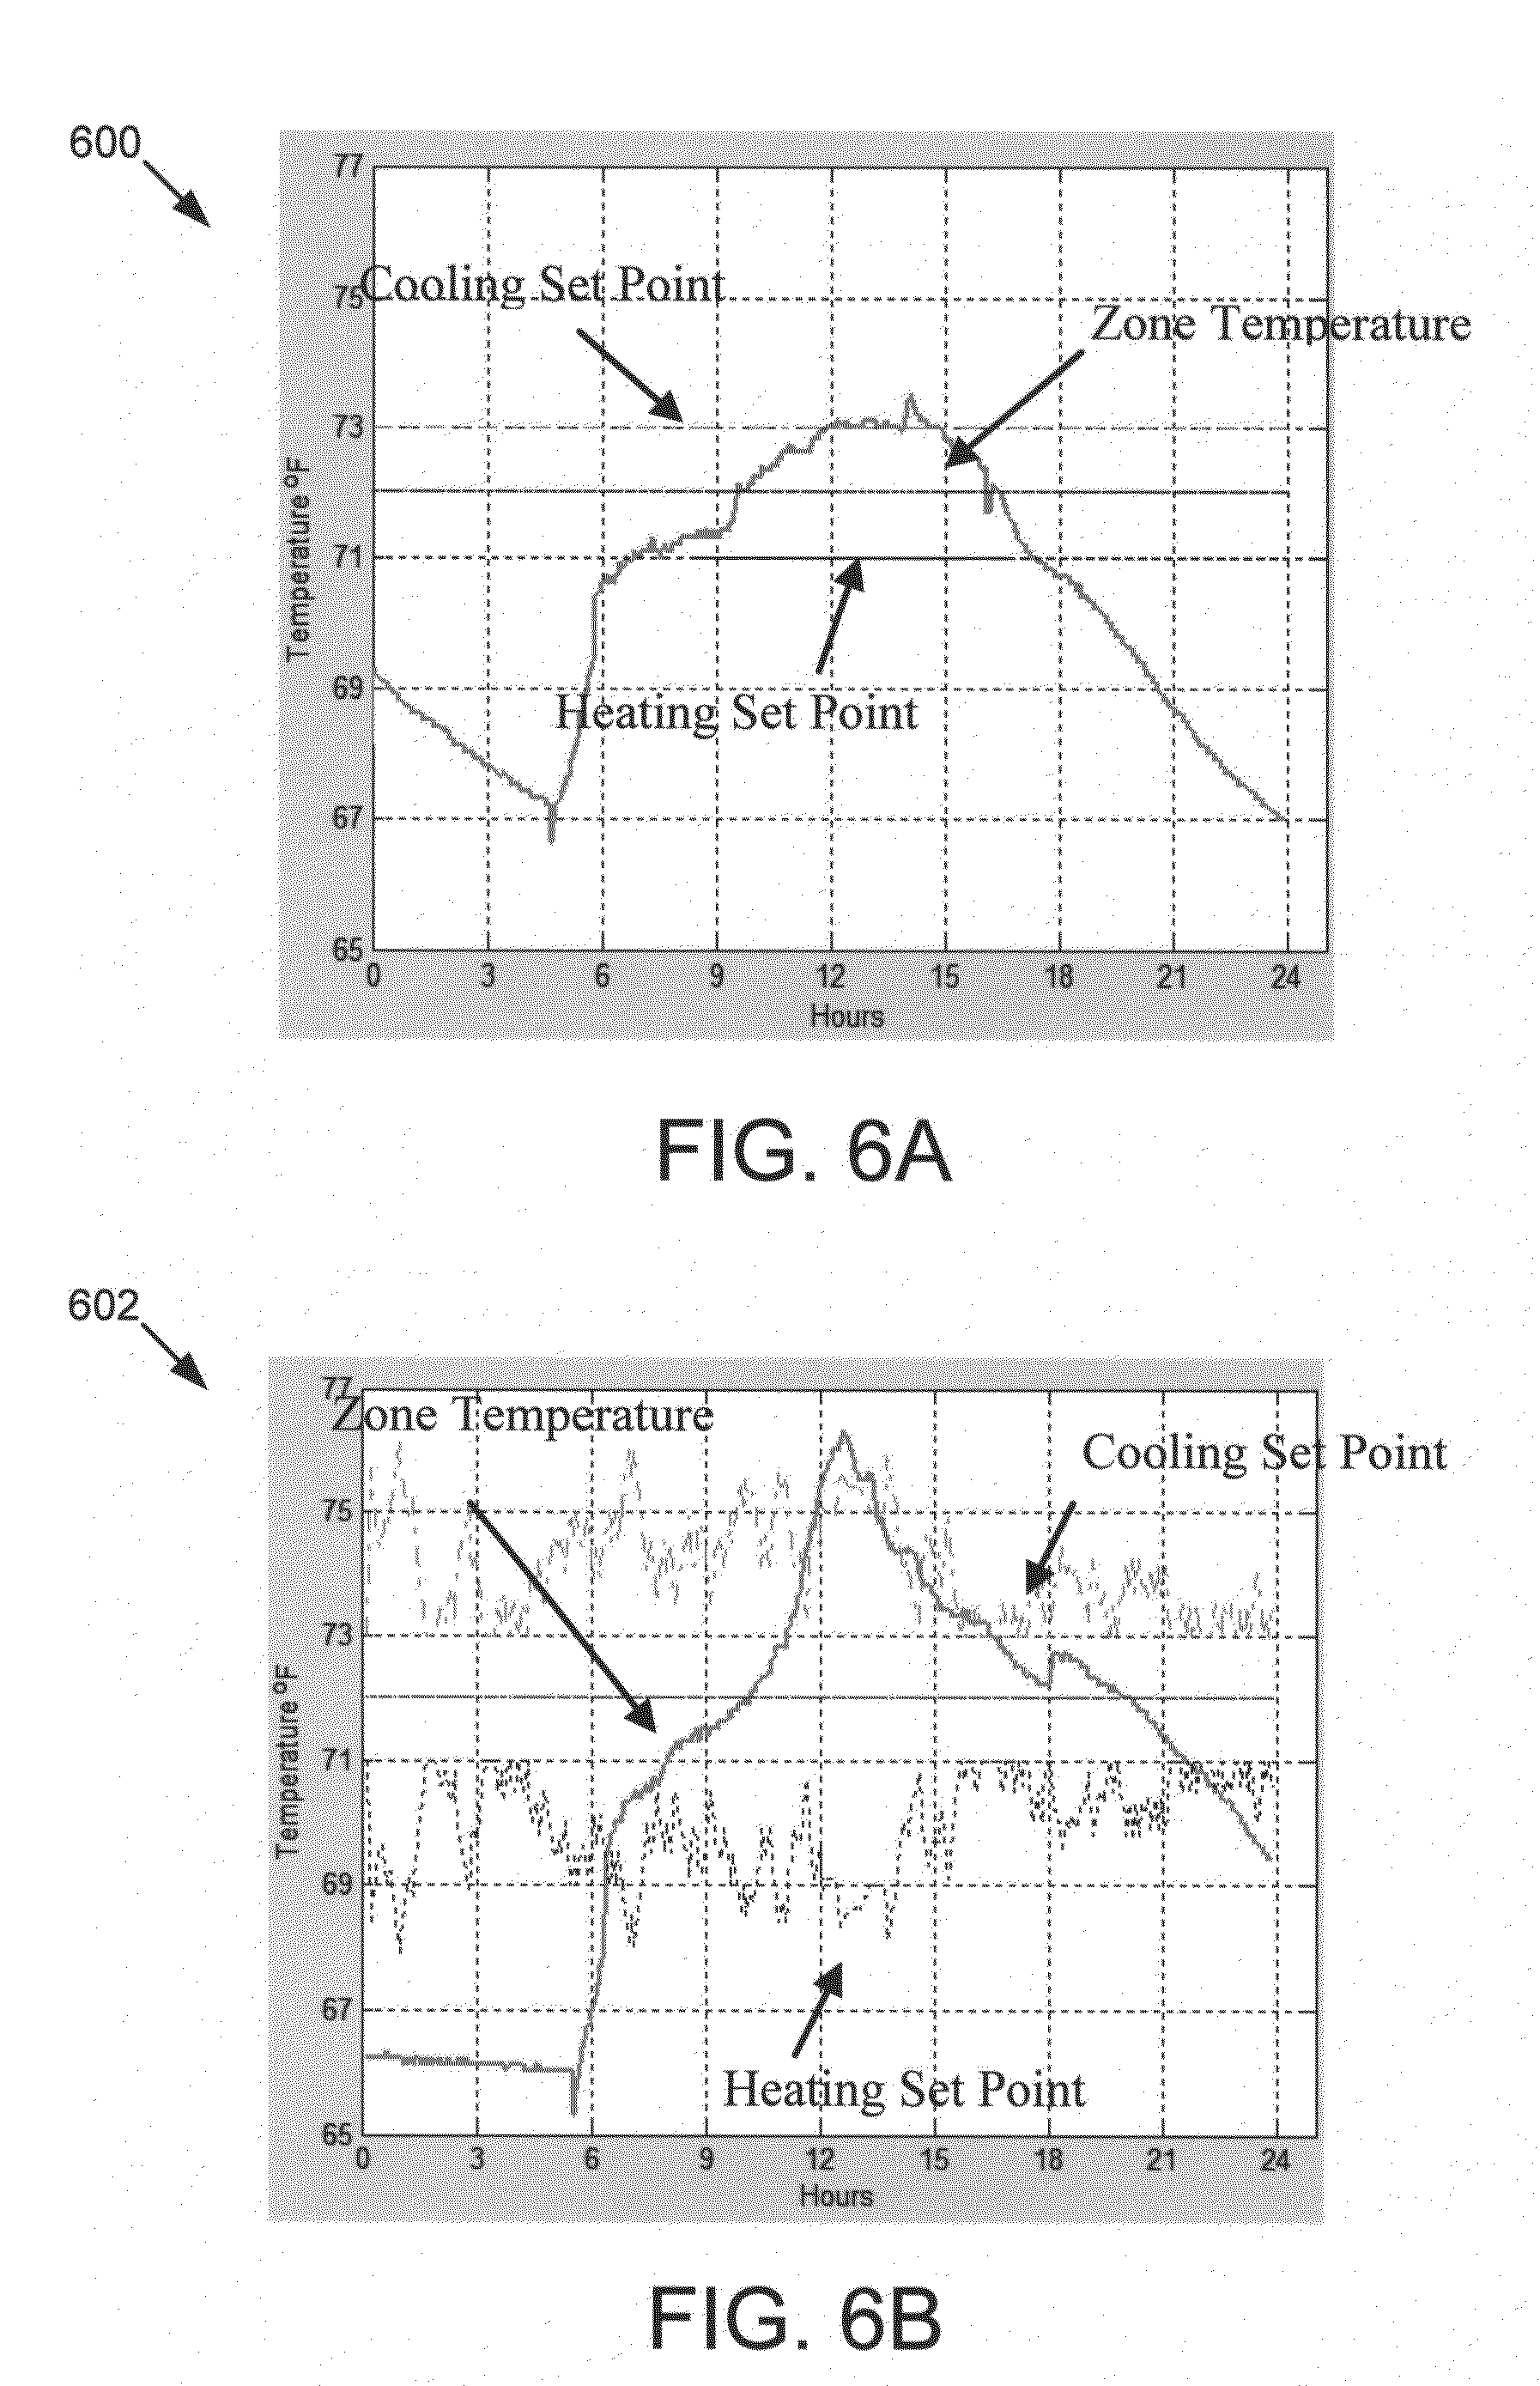 Patent Us 8639392 B2 The Schematics Is Pretty Simple Quotvoltage Selectorquot Switch